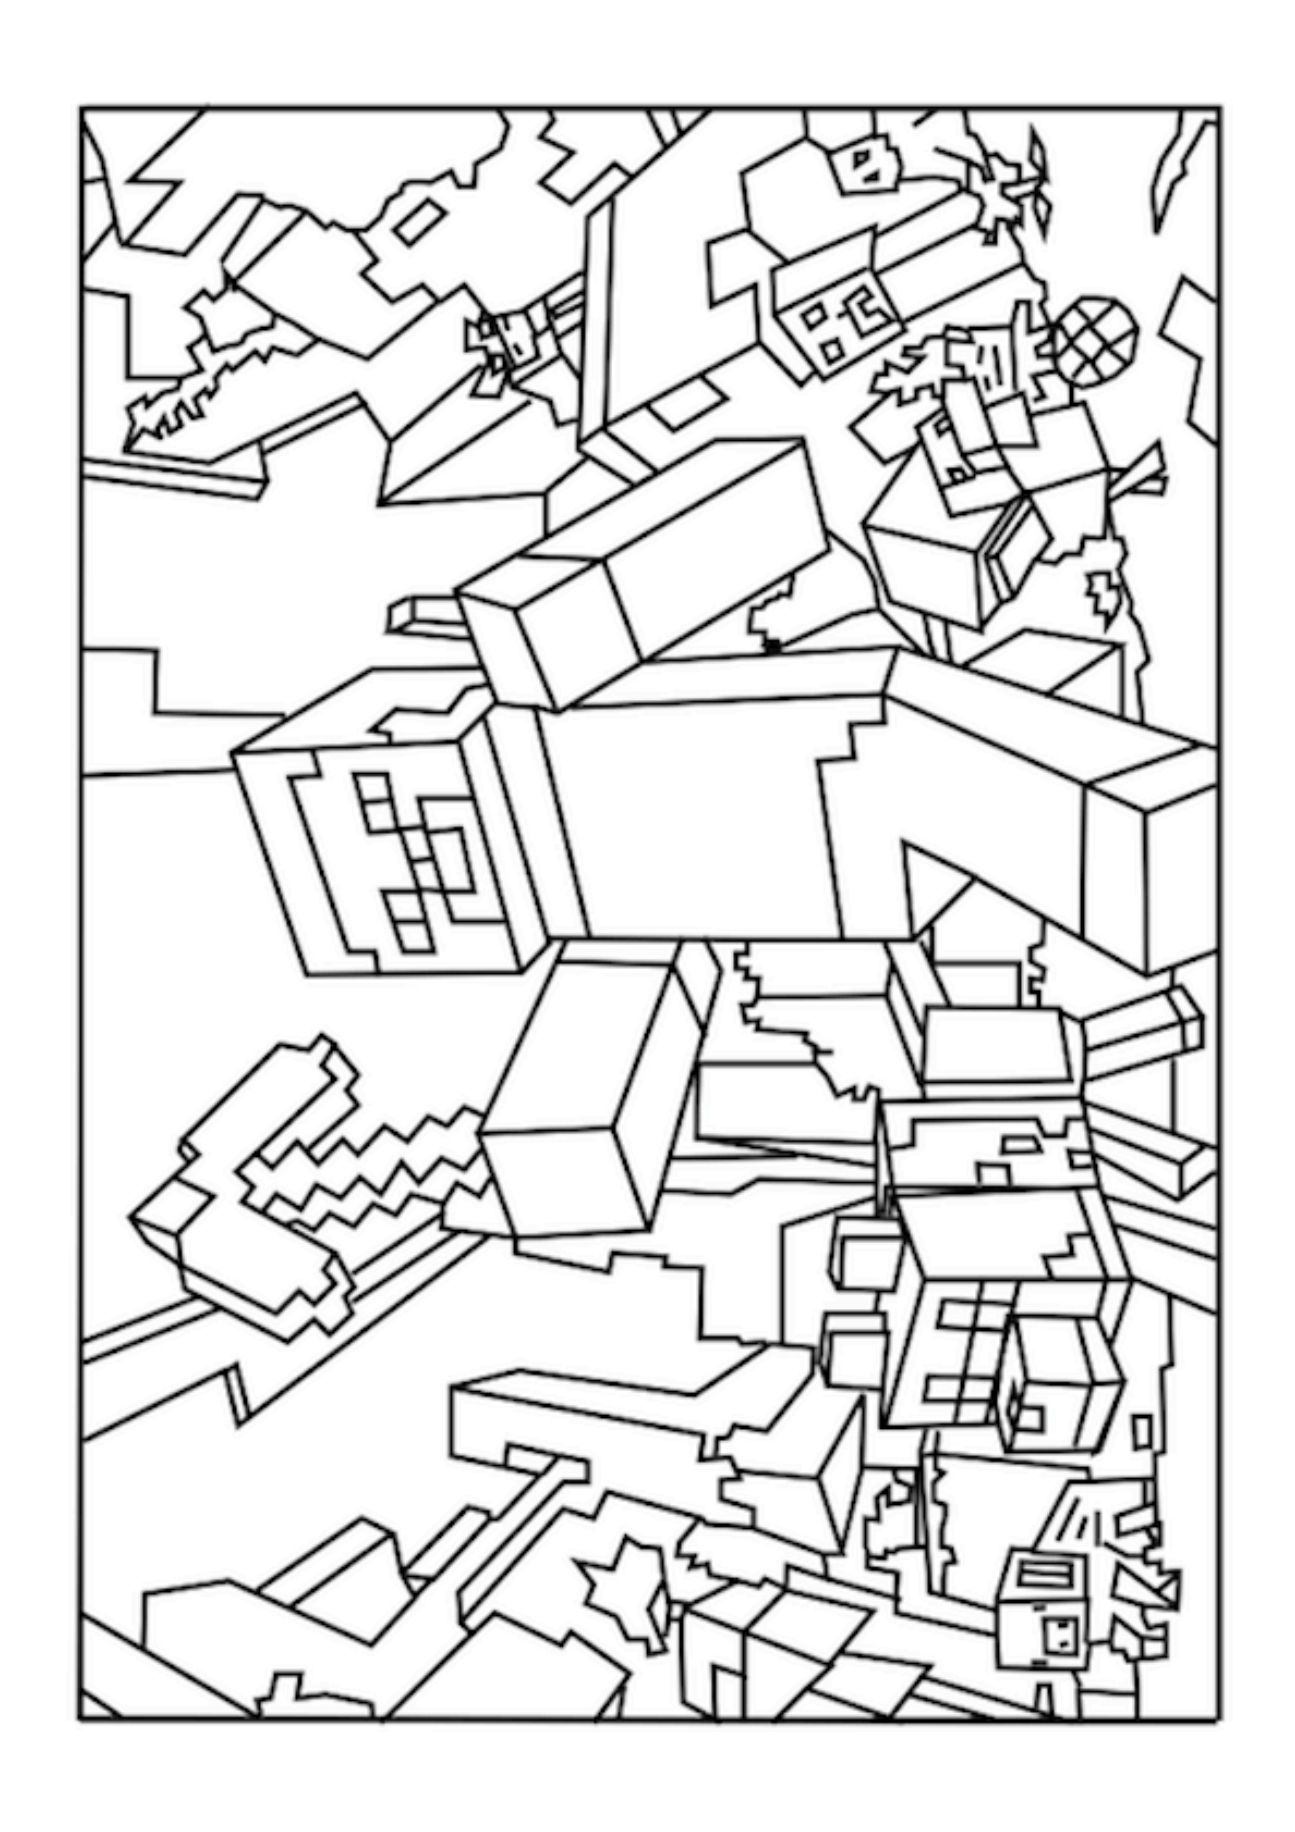 images of minecraft coloring pages minecraft coloring pages best coloring pages for kids minecraft coloring images pages of